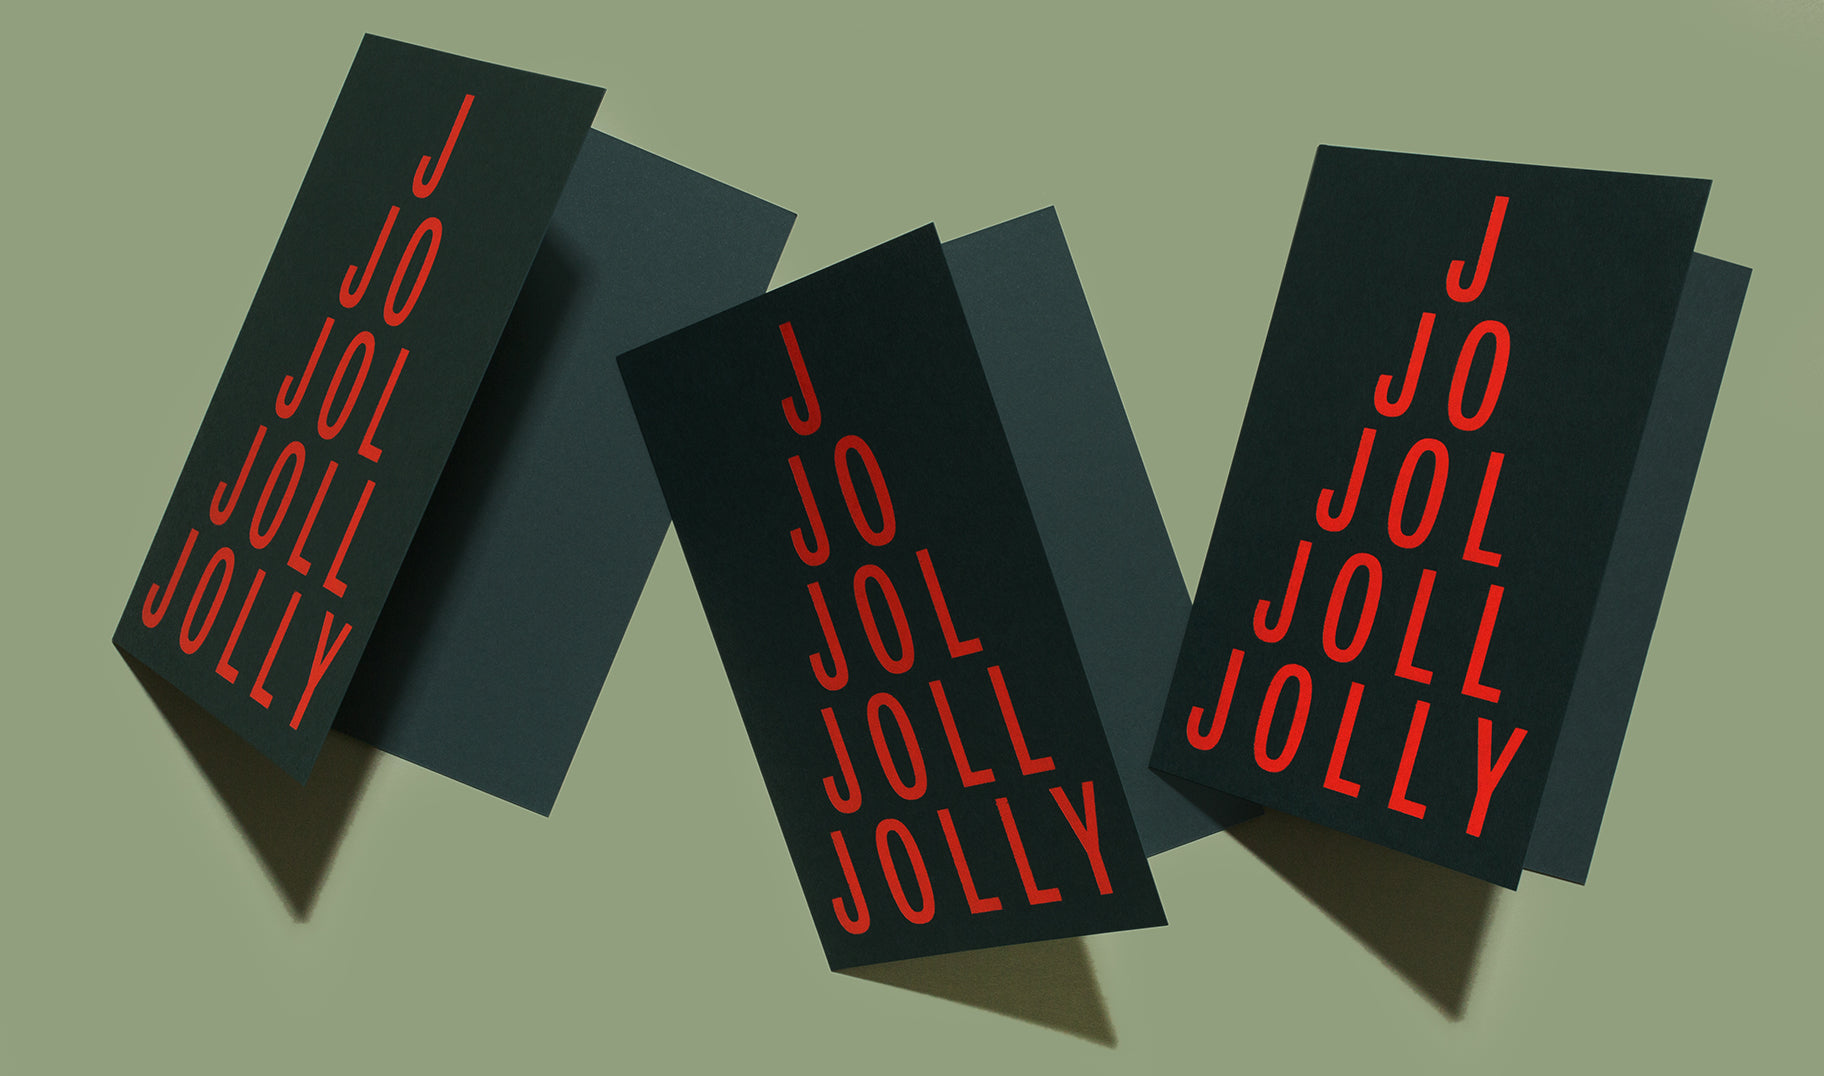 Our take on the classic Christmas card. Jolly features a bright red foil stamp on a heavyweight dark green Mohawk Keaykolour paper.